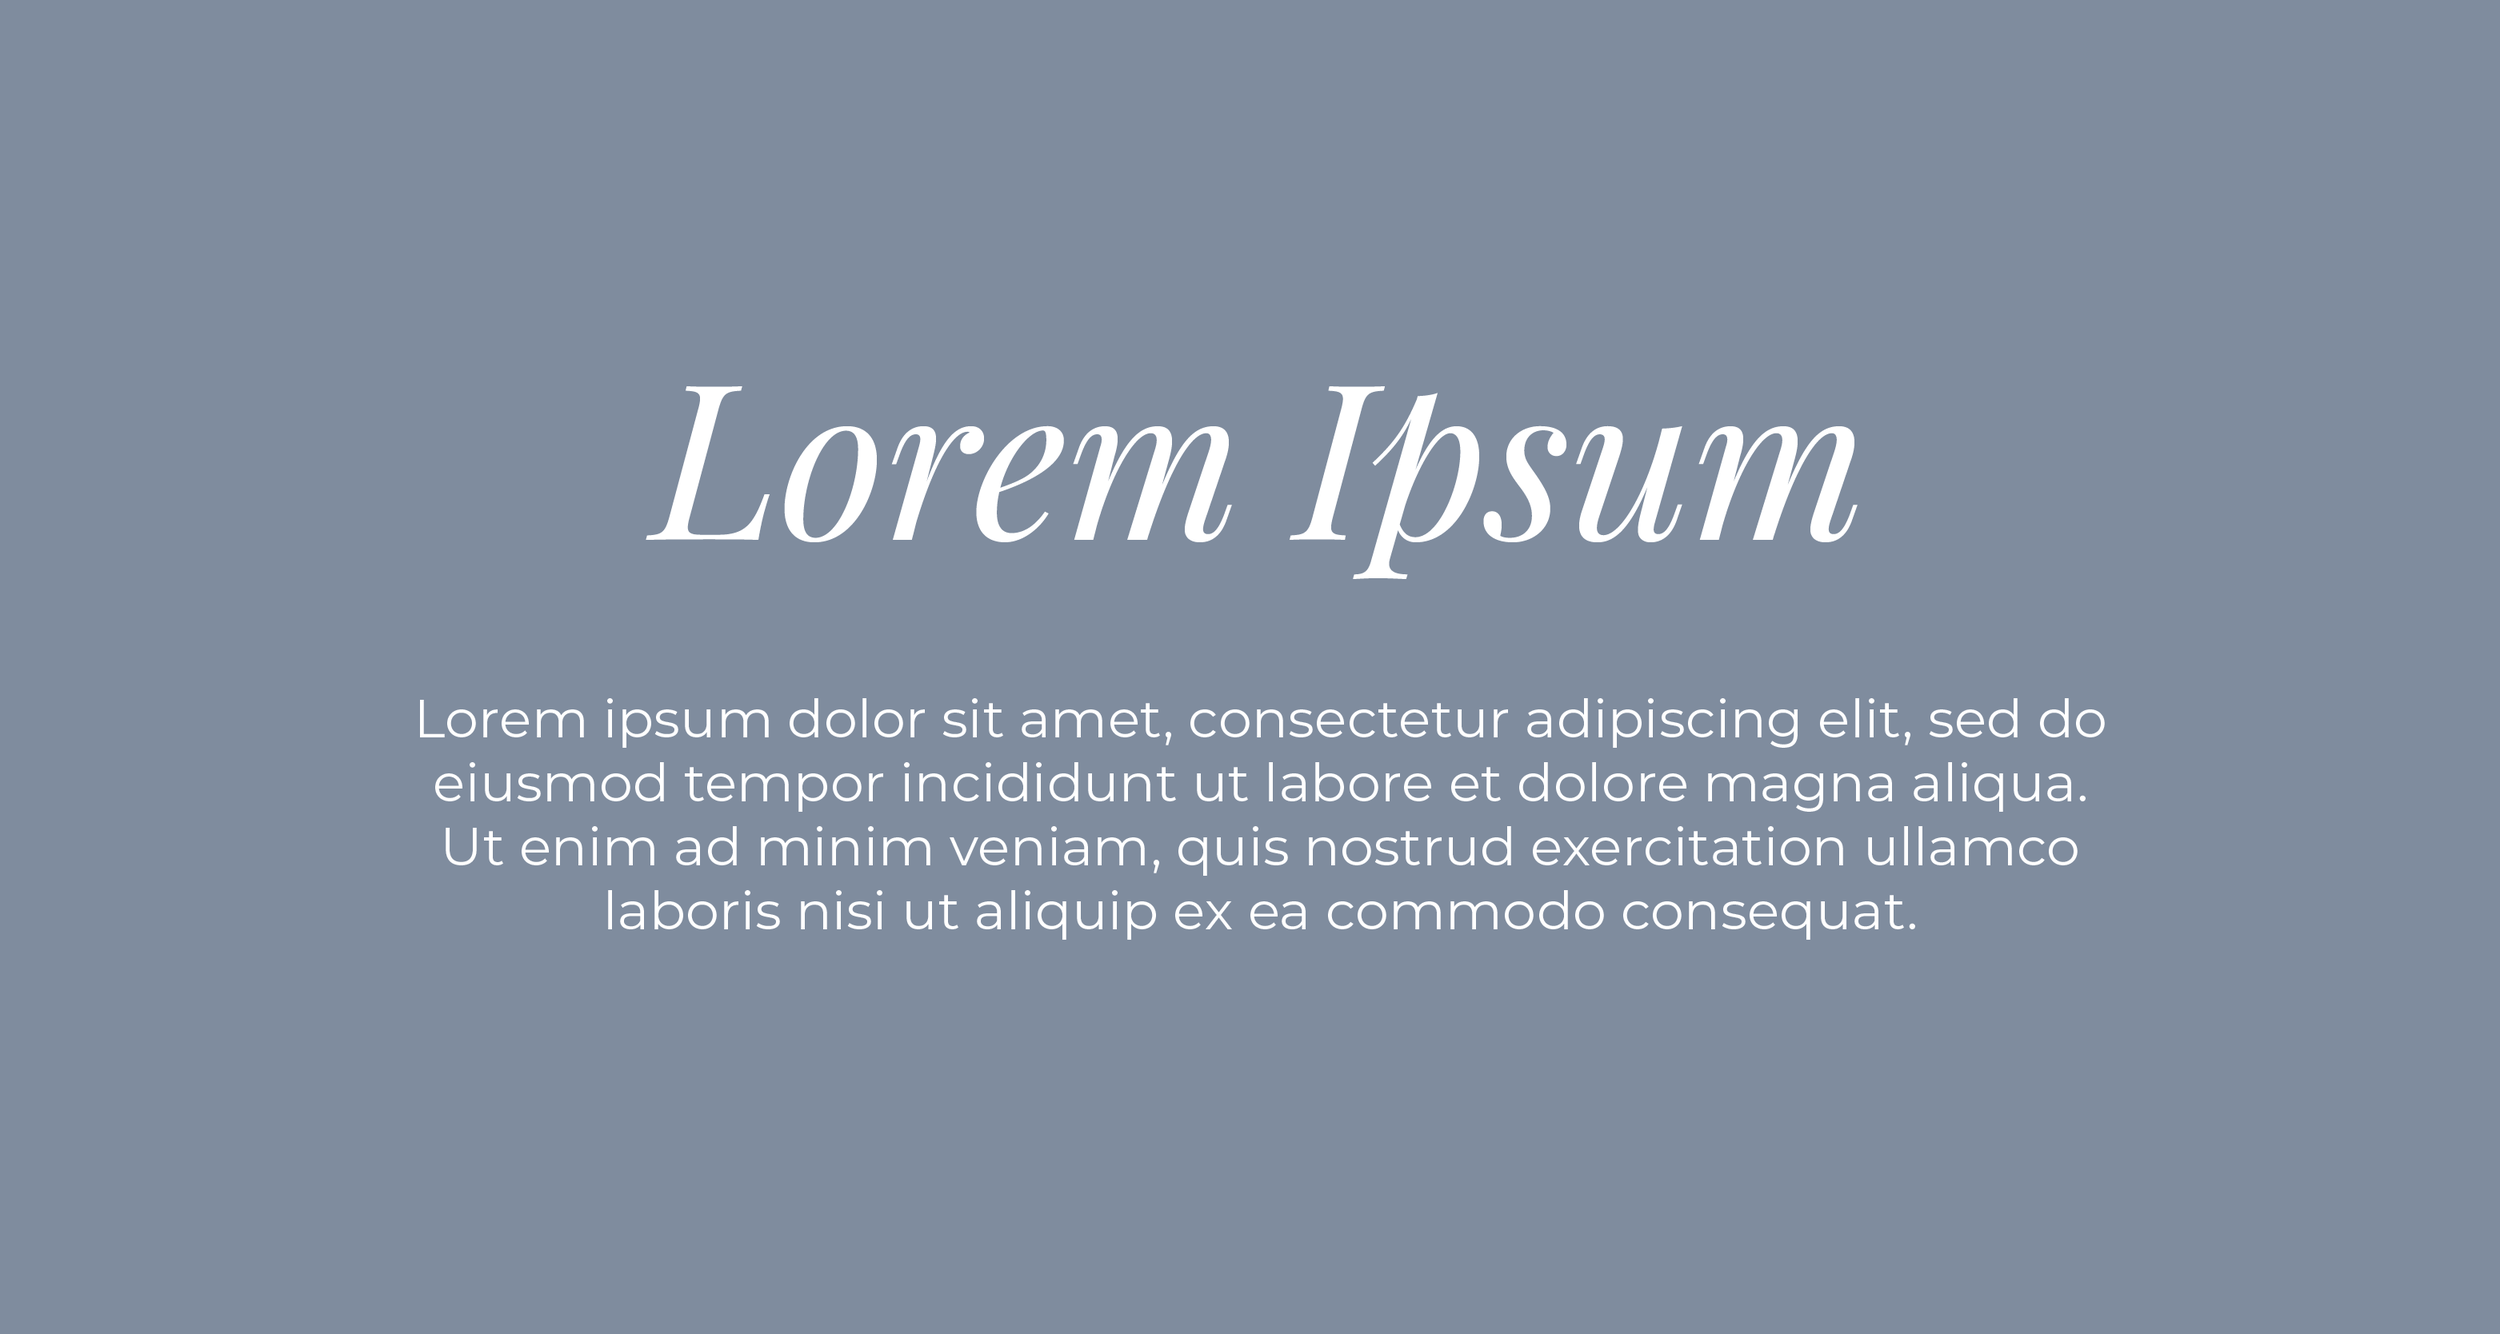 Playfair Display Regular Italic (header) paired with Montserrat Regular.